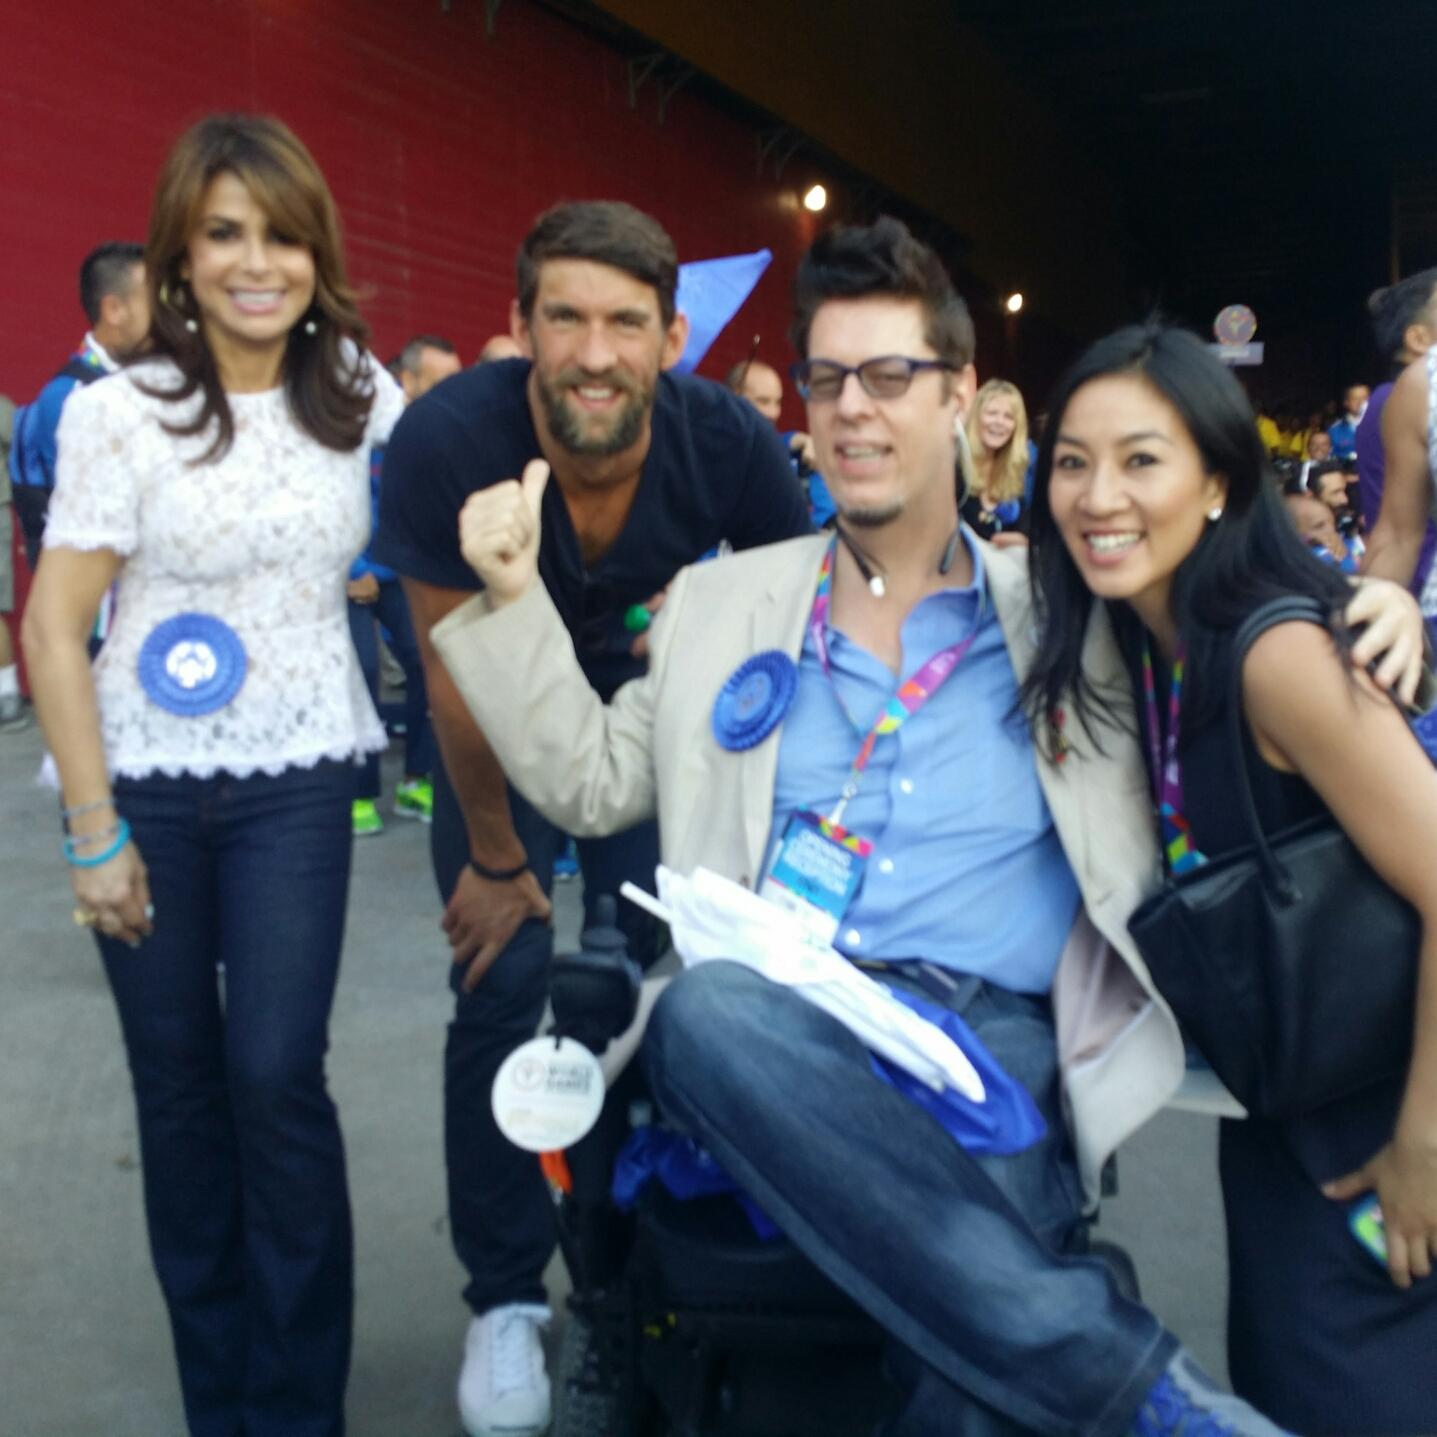 Cool 1 for #ThrowbackThursday > Me, @MichaelPhelps @MichelleWKwan and @musical_wheels at @LA2015 :) xoP #ReachUpLA http://t.co/wqPt9WWdMd